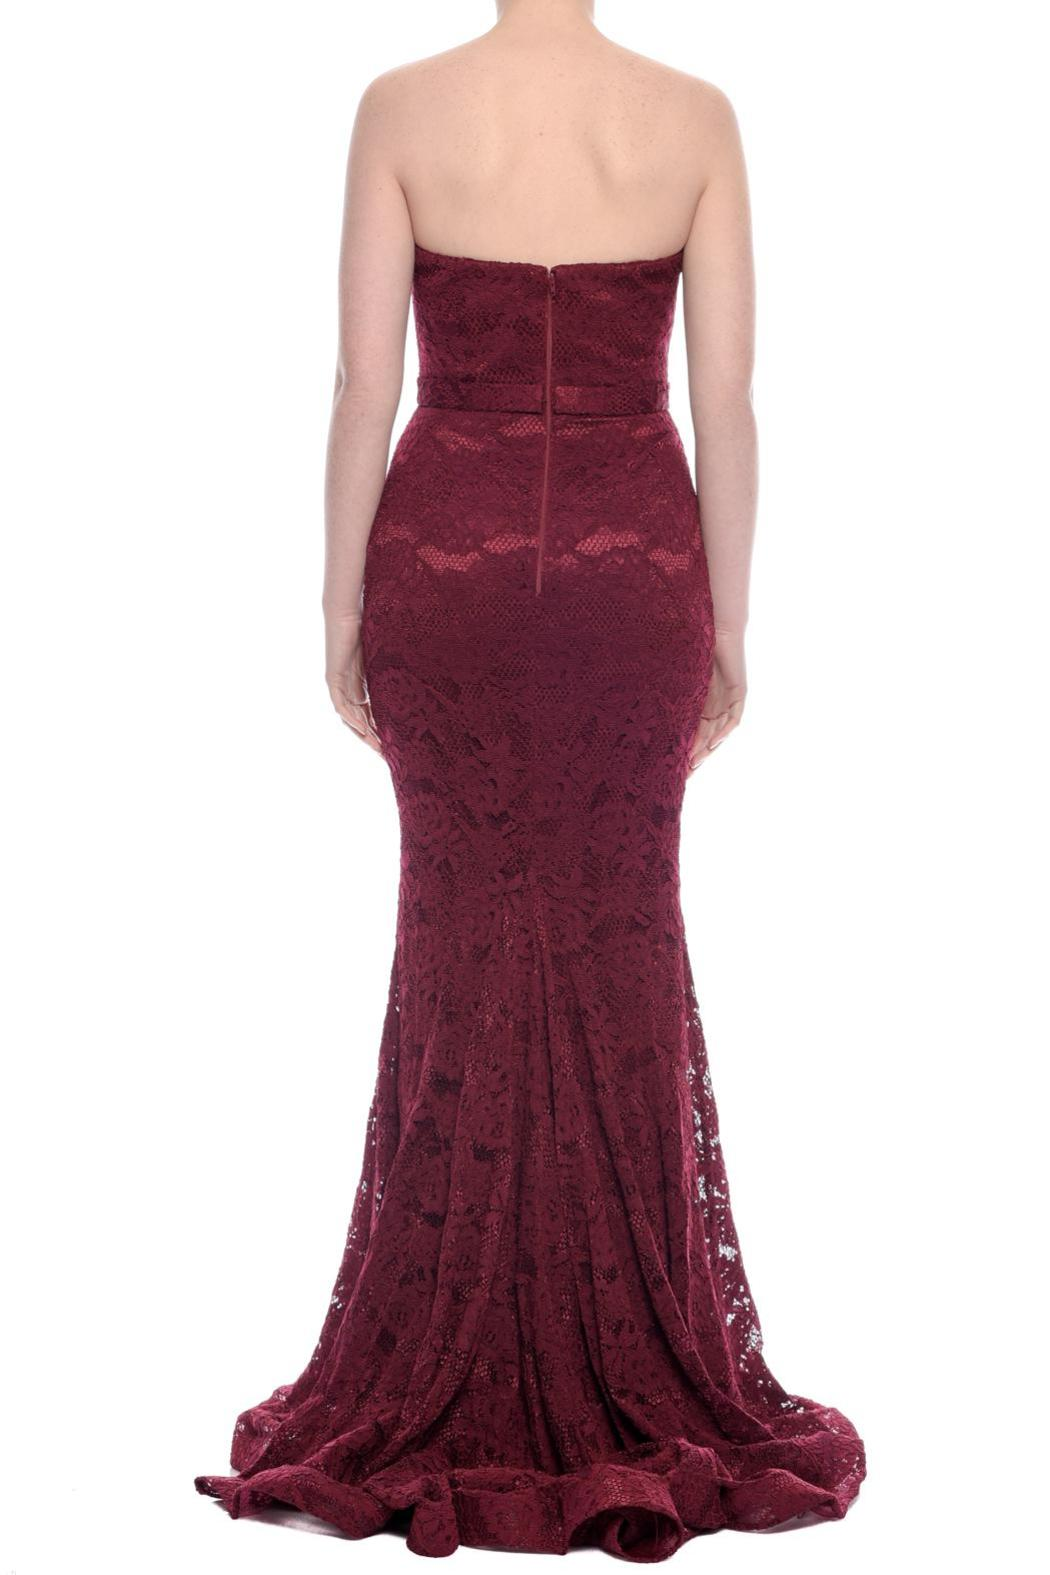 Jadore Amore Gown from Sydney by Windsor and Lux — Shoptiques